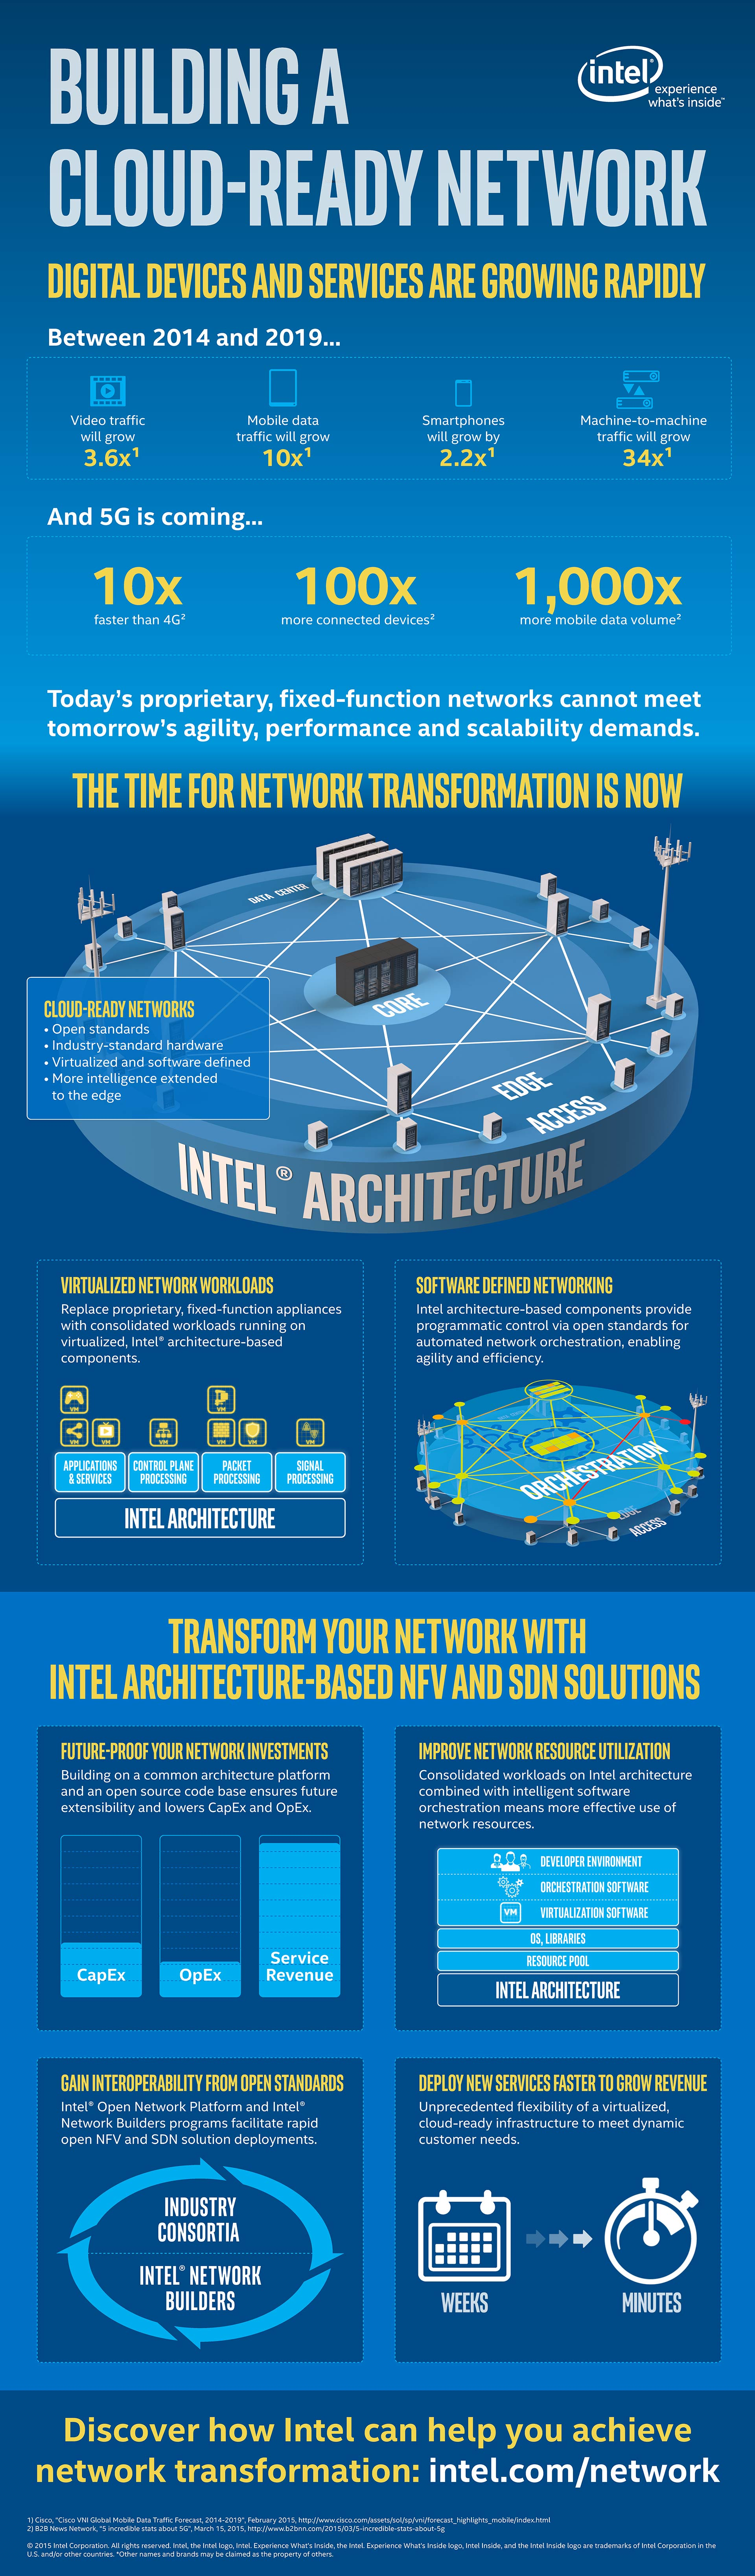 next-generation-network-architecture-infographic